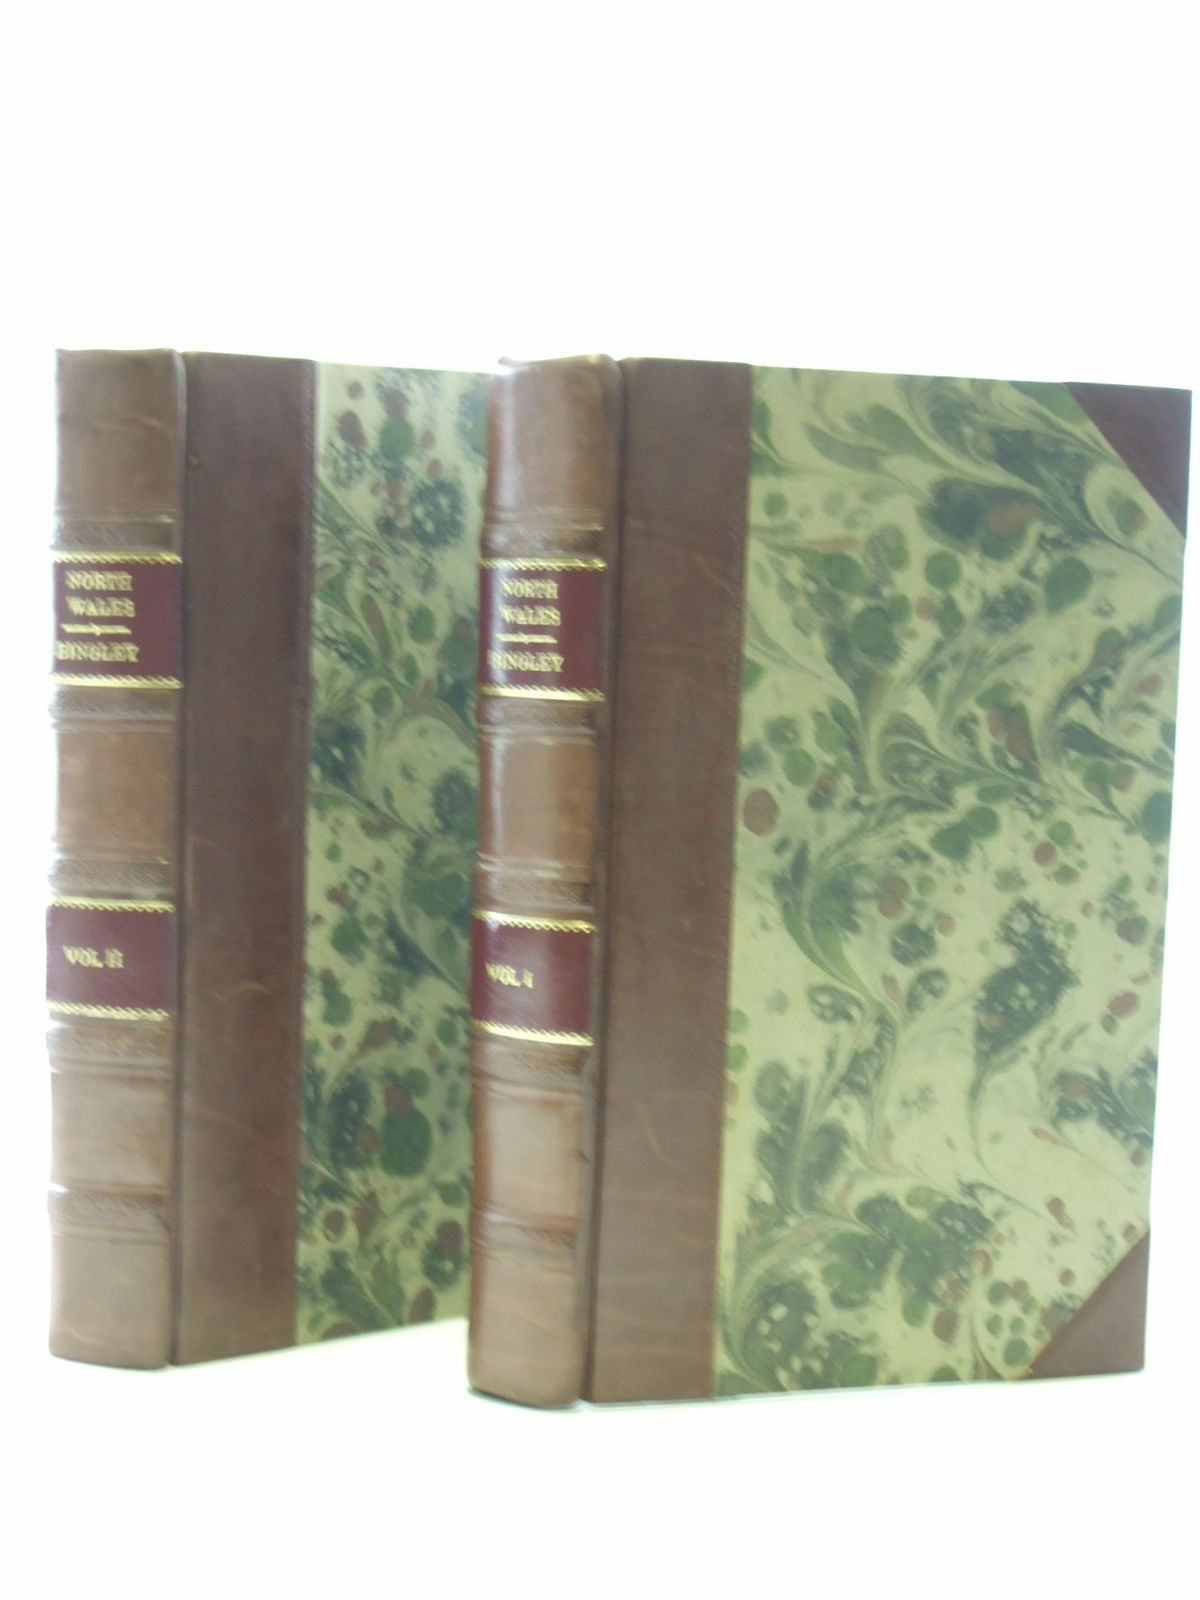 Photo of NORTH WALES INCLUDING ITS SCENERY, ANTIQUITIES, CUSTOMS (2 VOLS) written by Bingley, Rev. W. published by T.N. Longman And O. Rees (STOCK CODE: 2107254)  for sale by Stella & Rose's Books